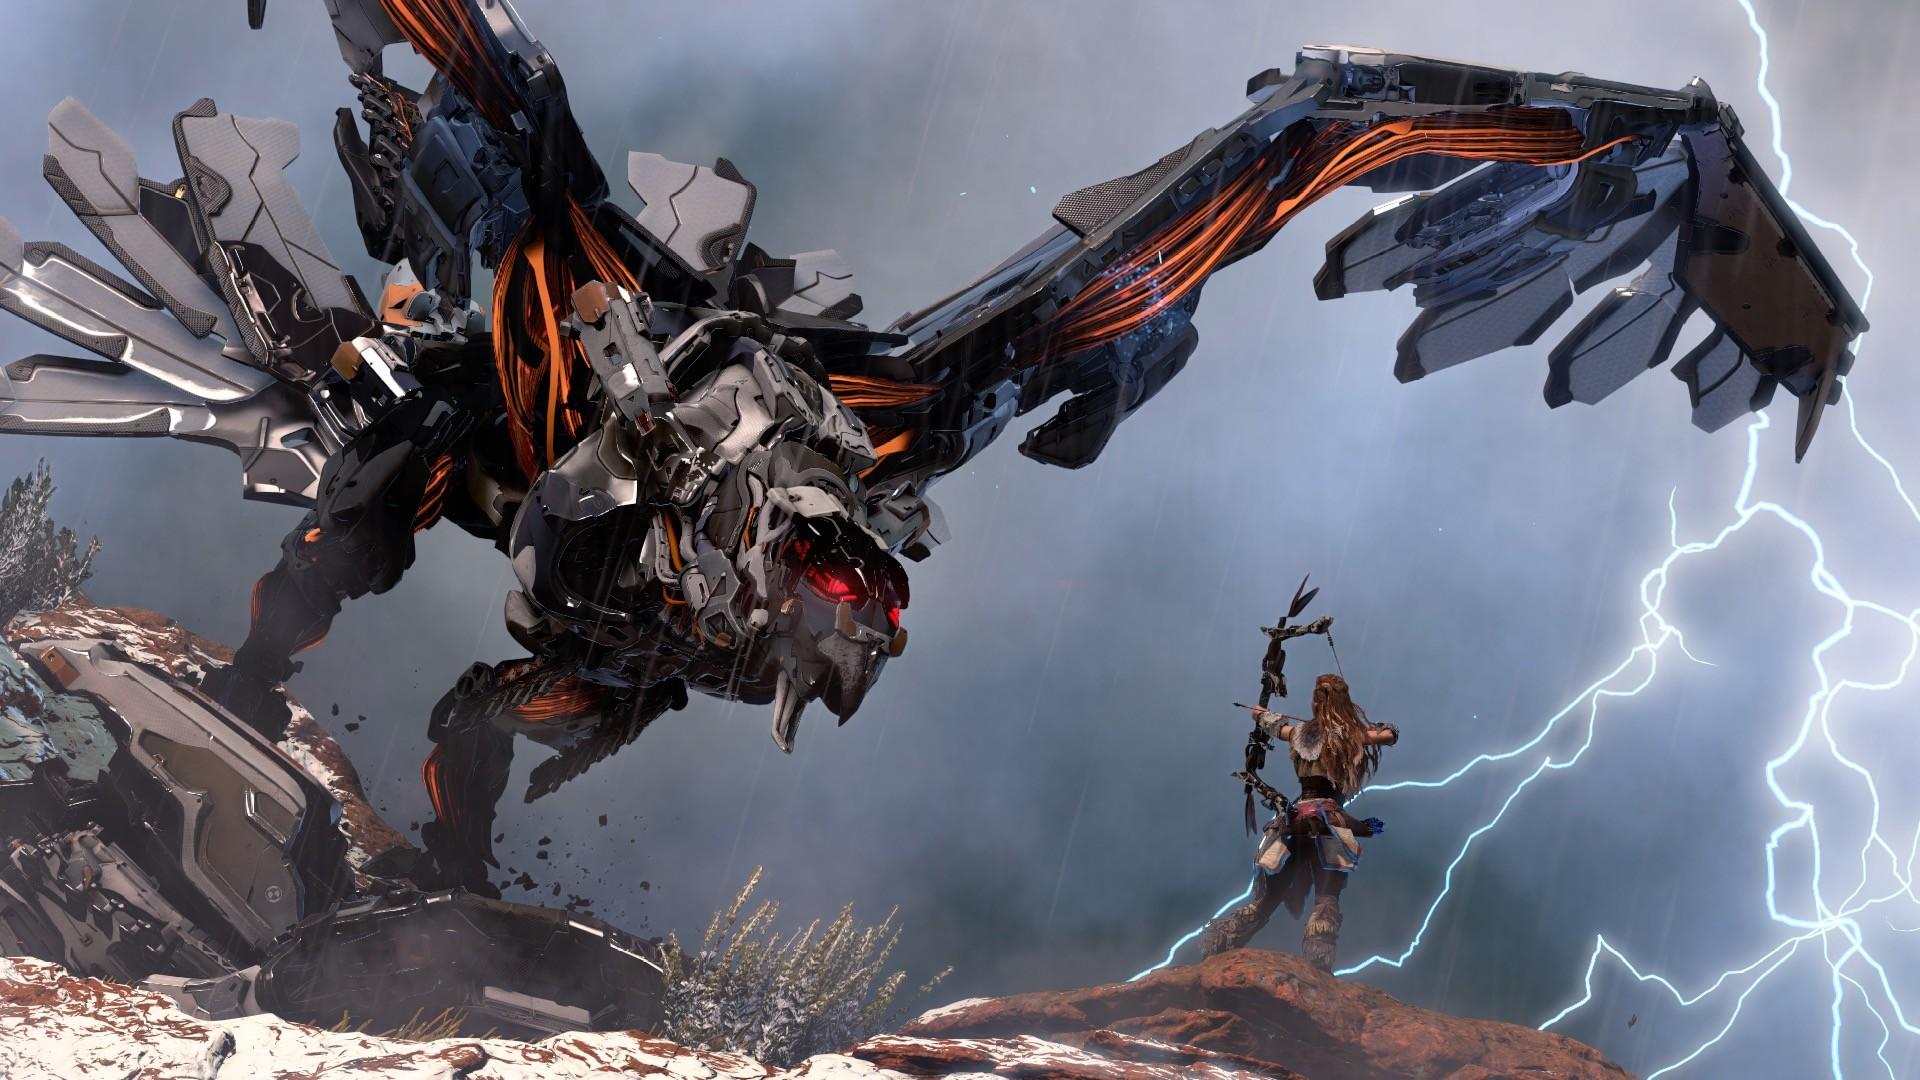 Guerrilla Releases Amazing Horizon: Zero Dawn Wallpapers For Your Devices